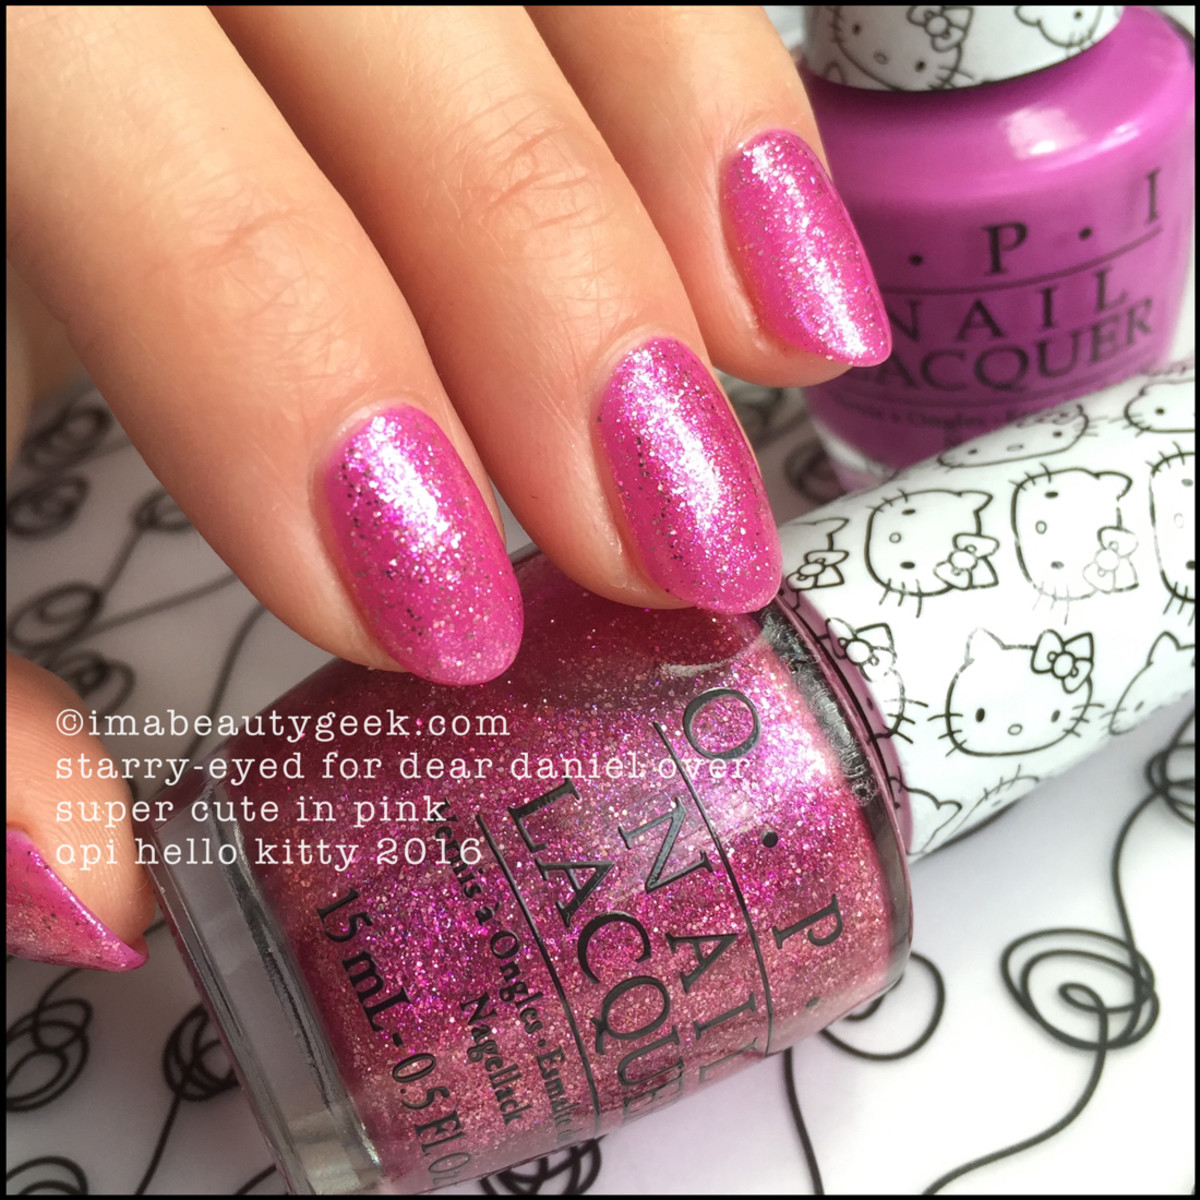 OPI Hello Kitty Swatches_OPI Starry Eyed for Dear Daniel over OPI Super Cute in Pink